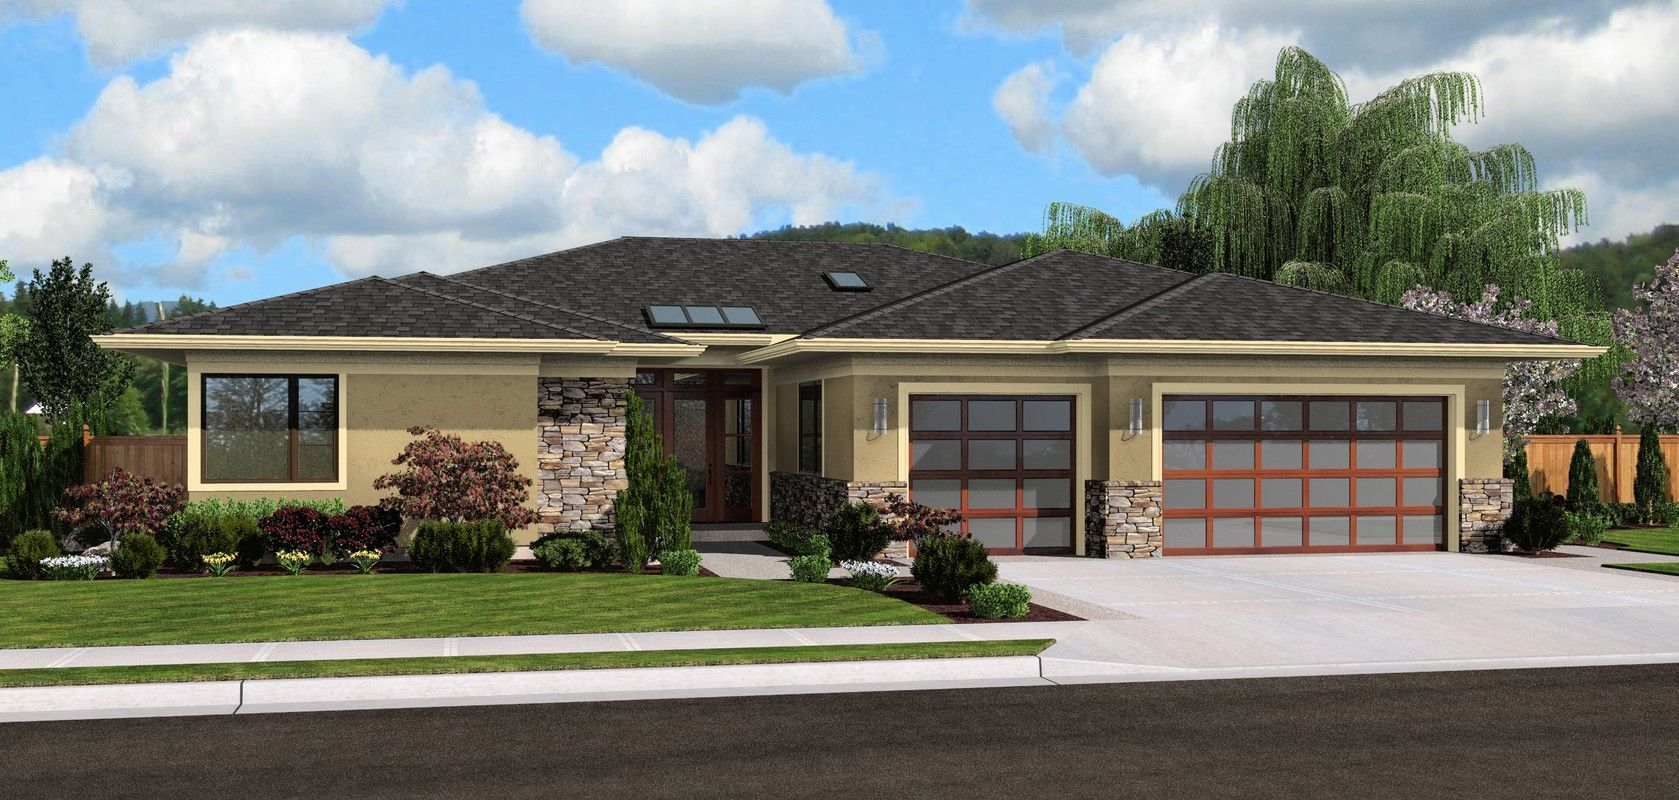 Mascord plan 1245 the riverside hoodriver homes for Modern ranch style homes